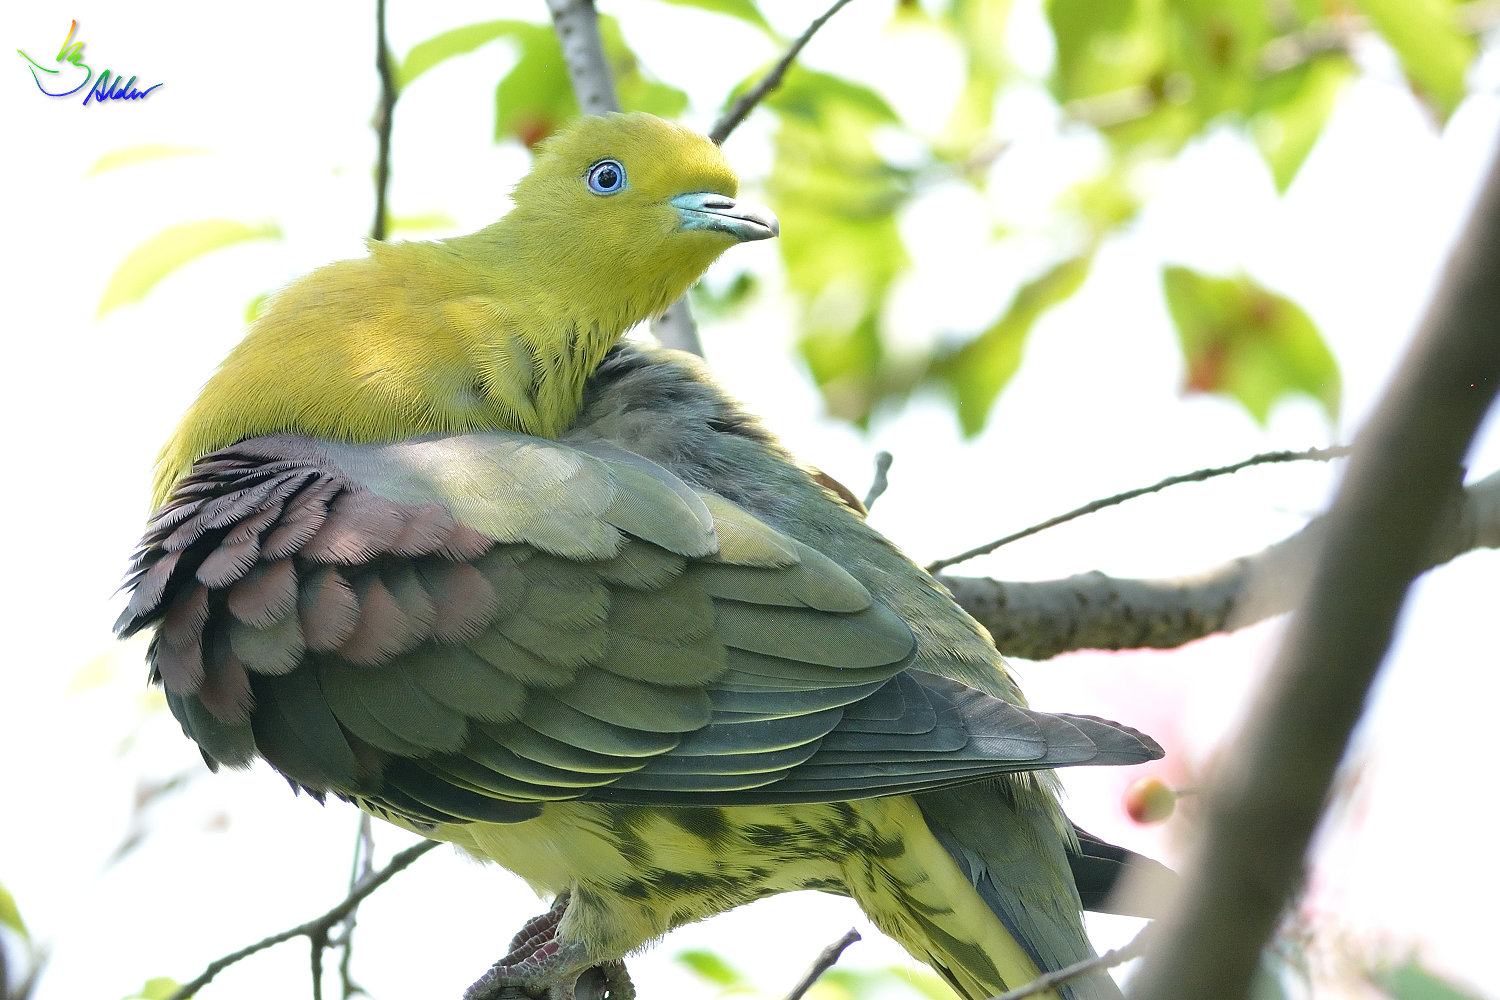 White-bellied_Green_Pigeon_5772